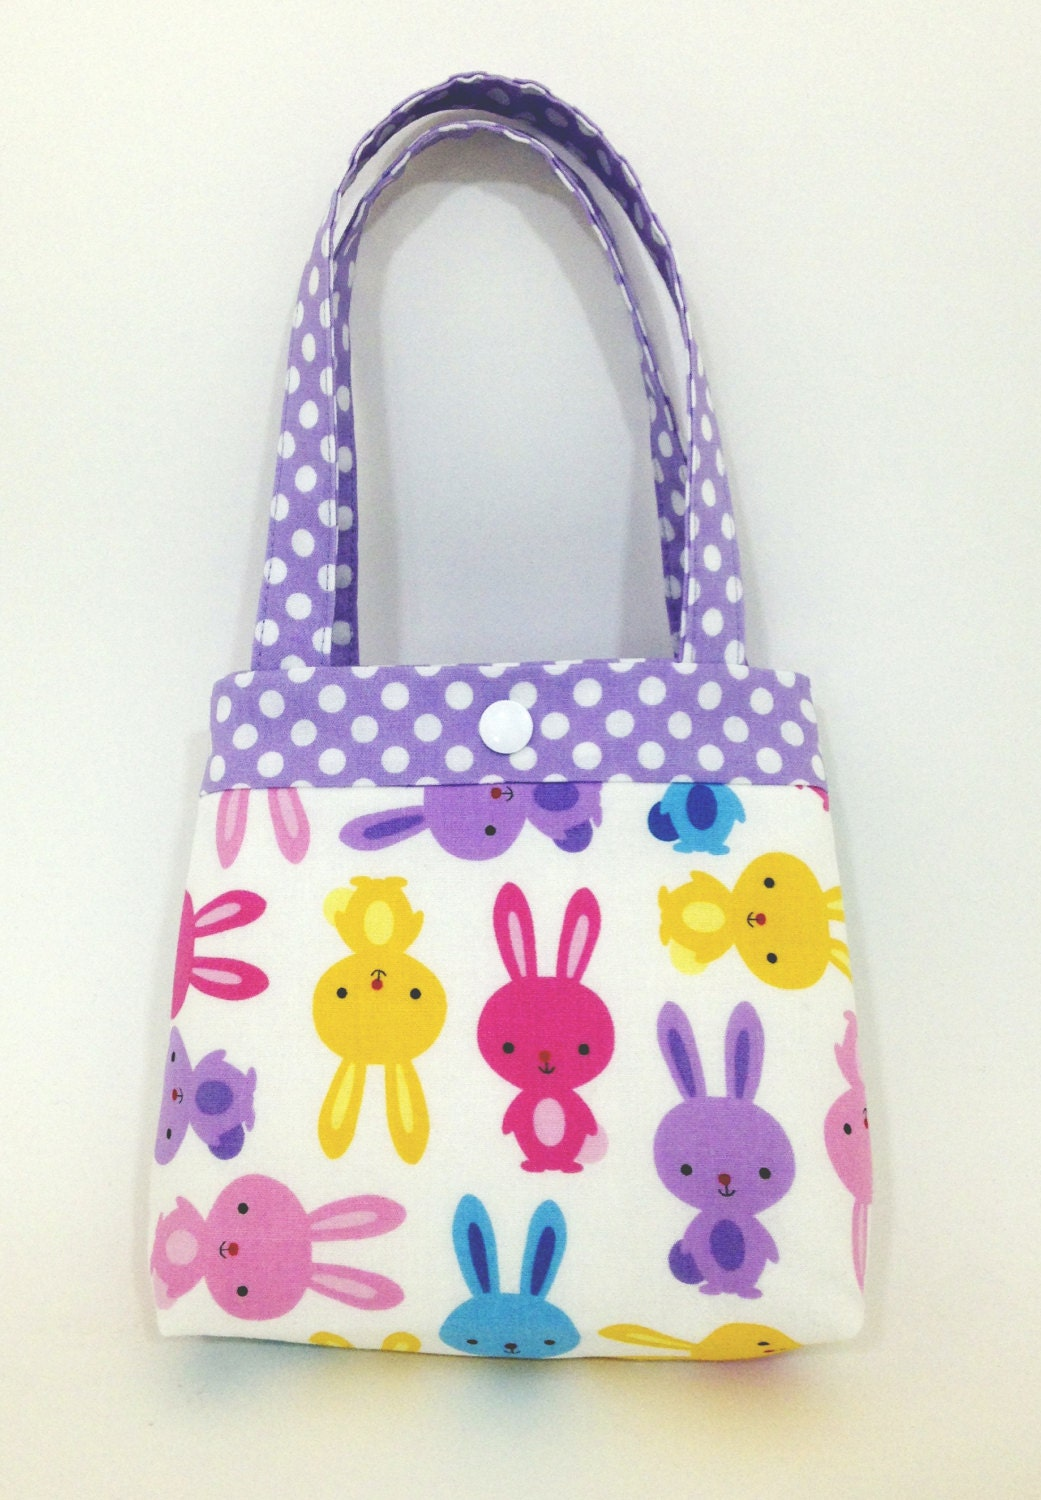 little girl purses - up to 70% off. Well, darn. This item just sold out. Select notify me & we'll tell you when it's back in stock.